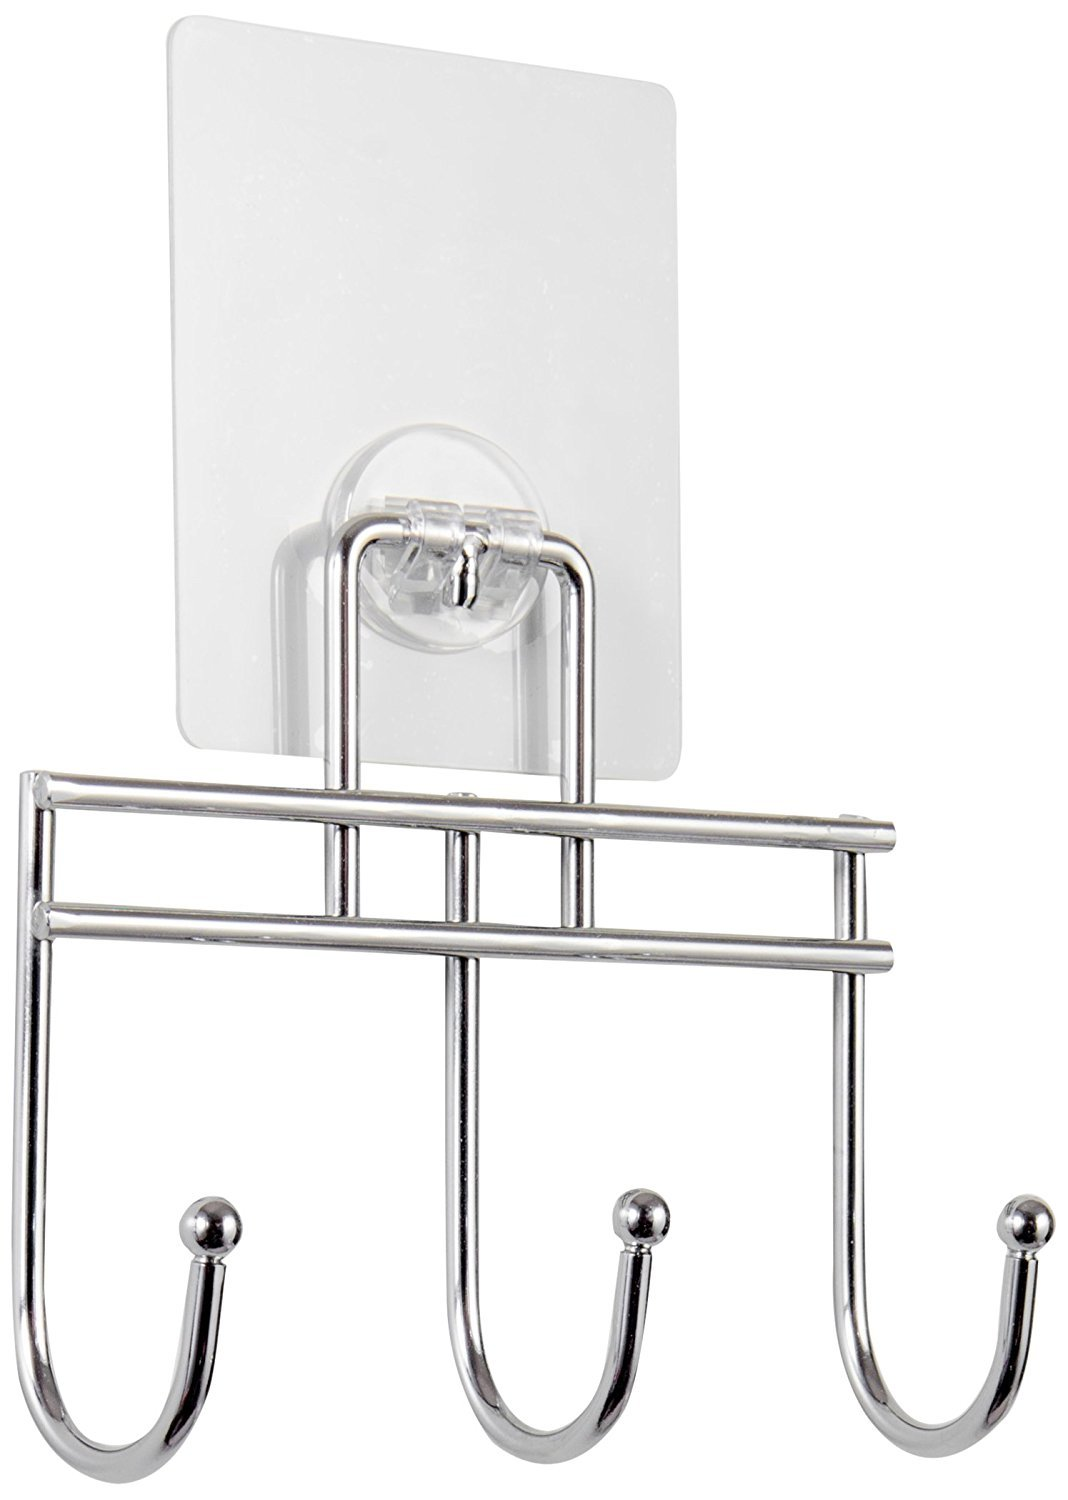 Compactor Bestlock Magic No Drilling Wall Mountable Kitchen Utensil Hanging Rack with 8 Hooks, Chrome C.I.E. Europe B00N4YYQU4